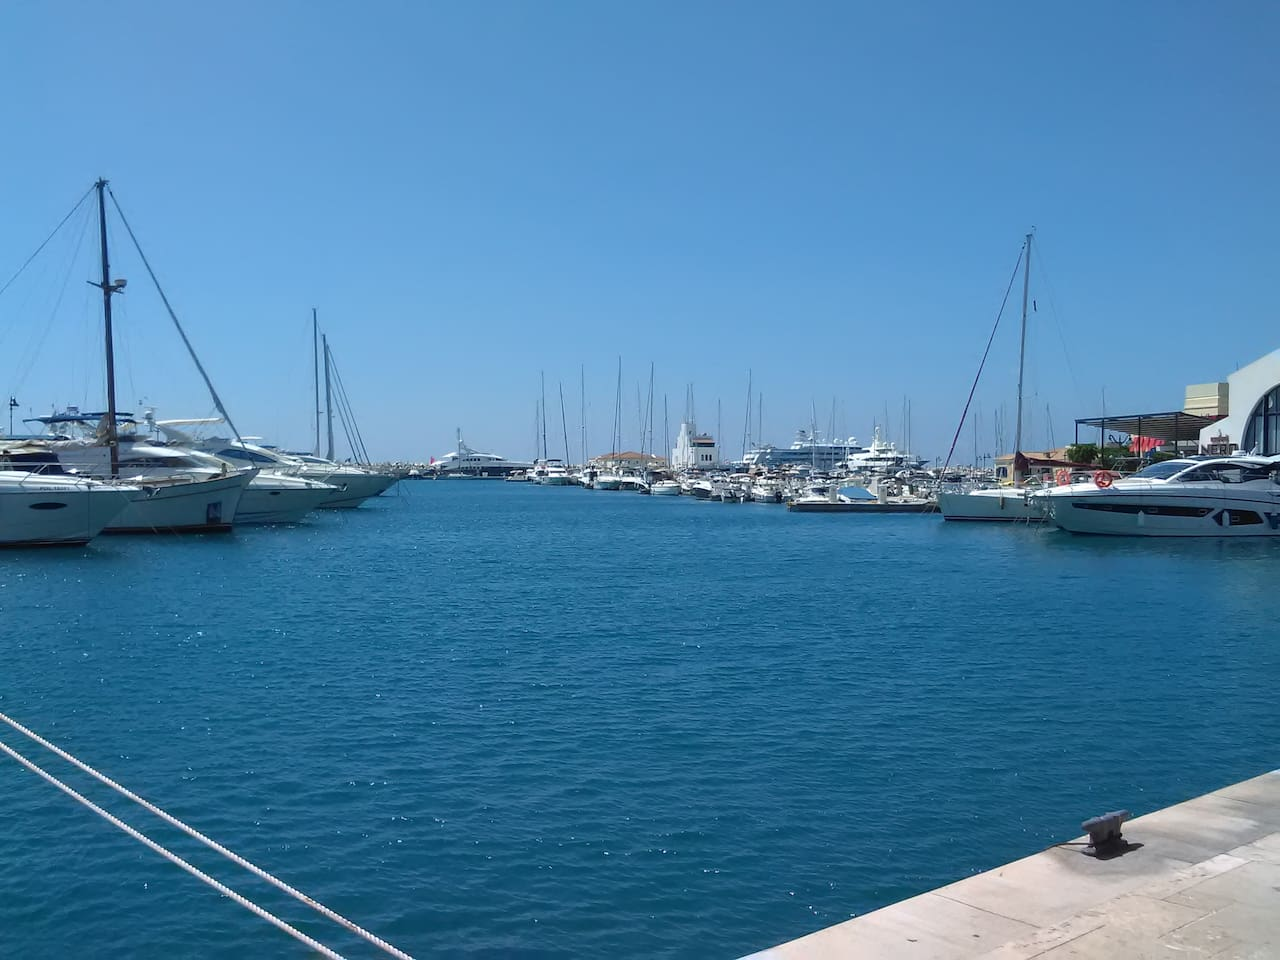 Limassol marina. 5 minutes walk to this area. our space is included in to the marina area